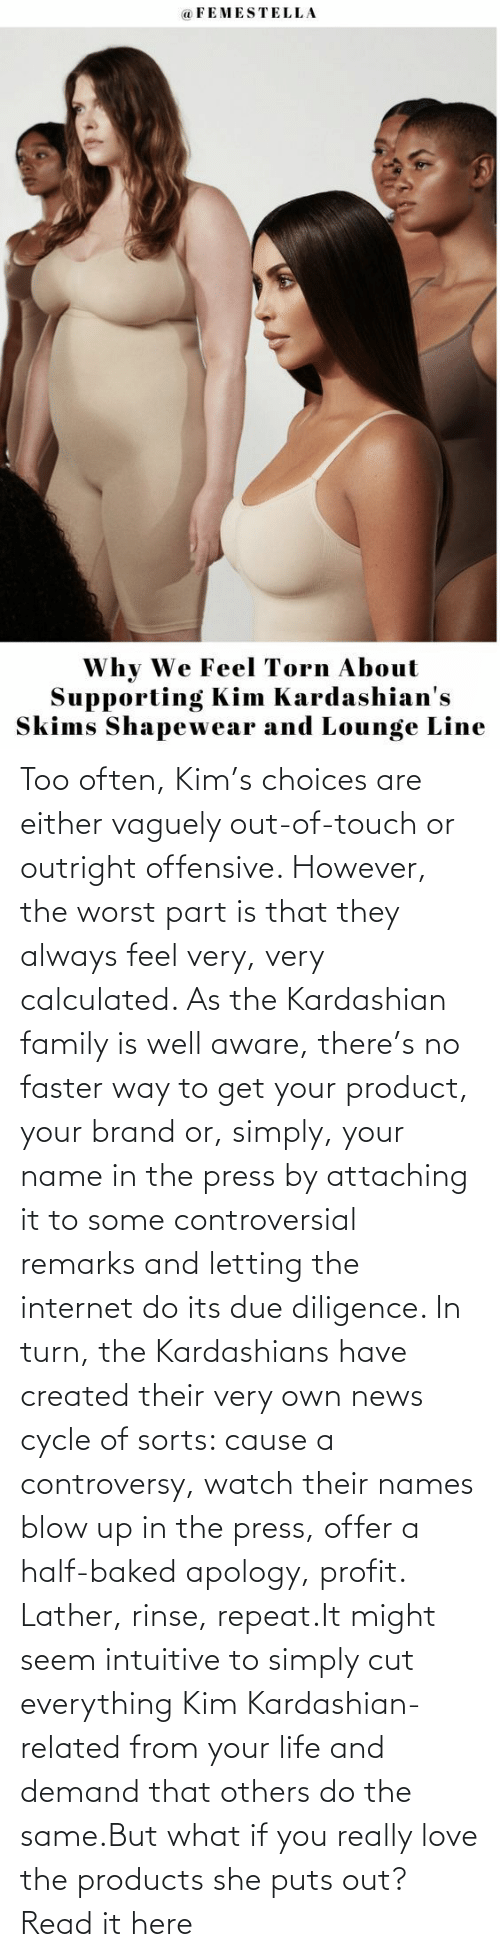 Baked, Family, and Internet: Too often, Kim's choices are either vaguely out-of-touch or outright offensive. However, the worst part is that they always feel very, very calculated. As the Kardashian family is well aware, there's no faster way to get your product, your brand or, simply, your name in the press by attaching it to some controversial remarks and letting the internet do its due diligence. In turn, the Kardashians have created their very own news cycle of sorts: cause a controversy, watch their names blow up in the press, offer a half-baked apology, profit. Lather, rinse, repeat.It might seem intuitive to simply cut everything Kim Kardashian-related from your life and demand that others do the same.But what if you really love the products she puts out?Read it here